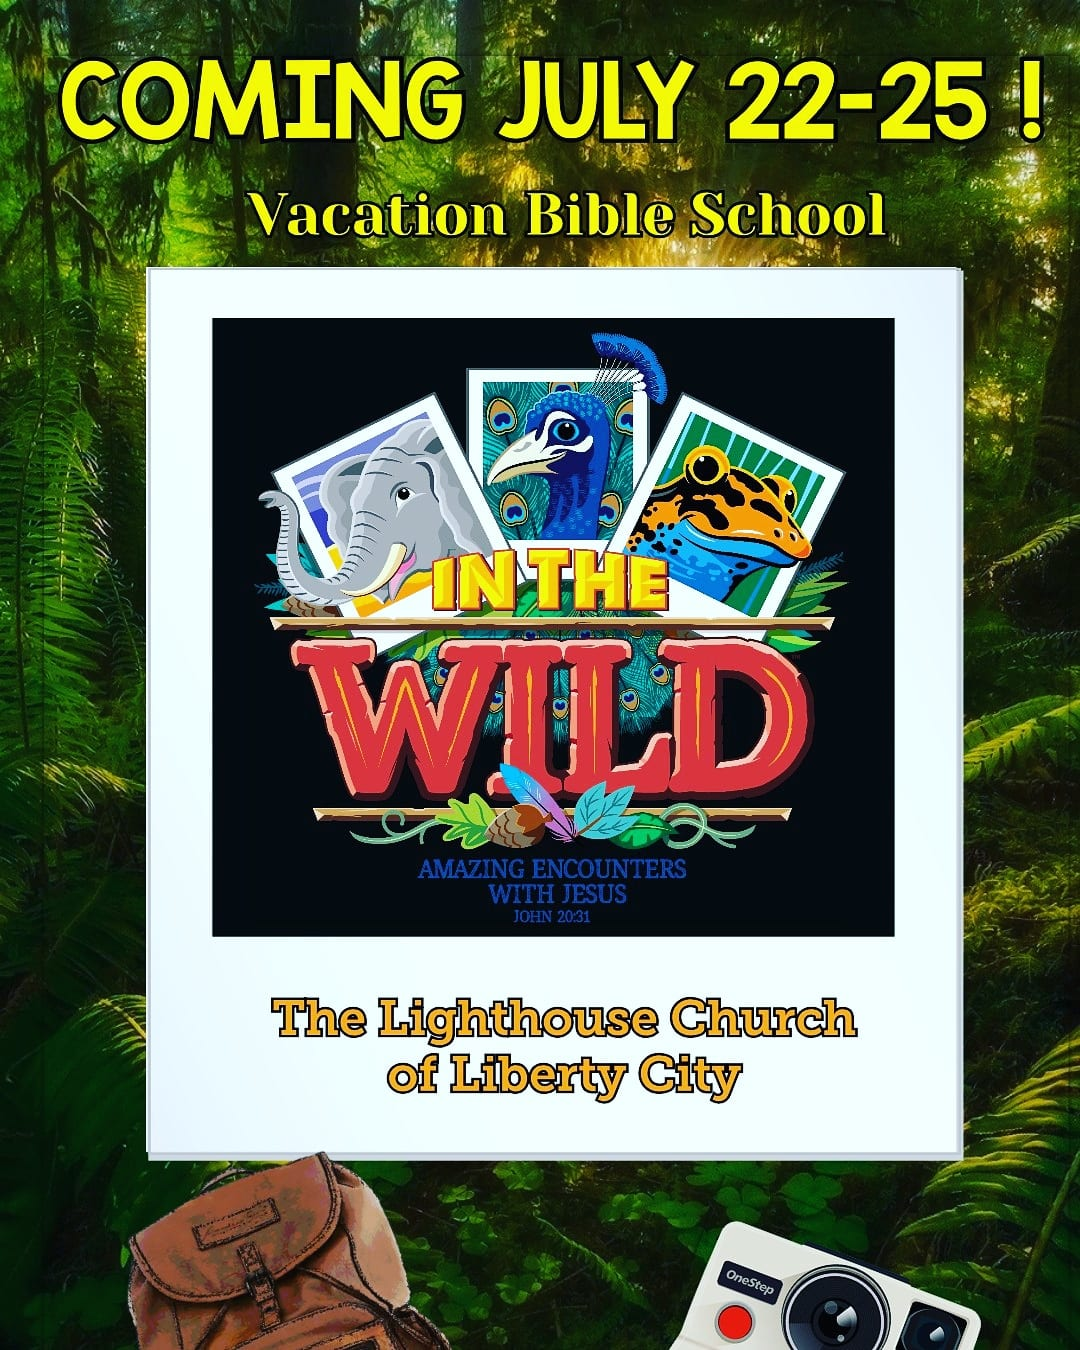 In the Wild VBS 2019 | 89 5 KVNE Community Events